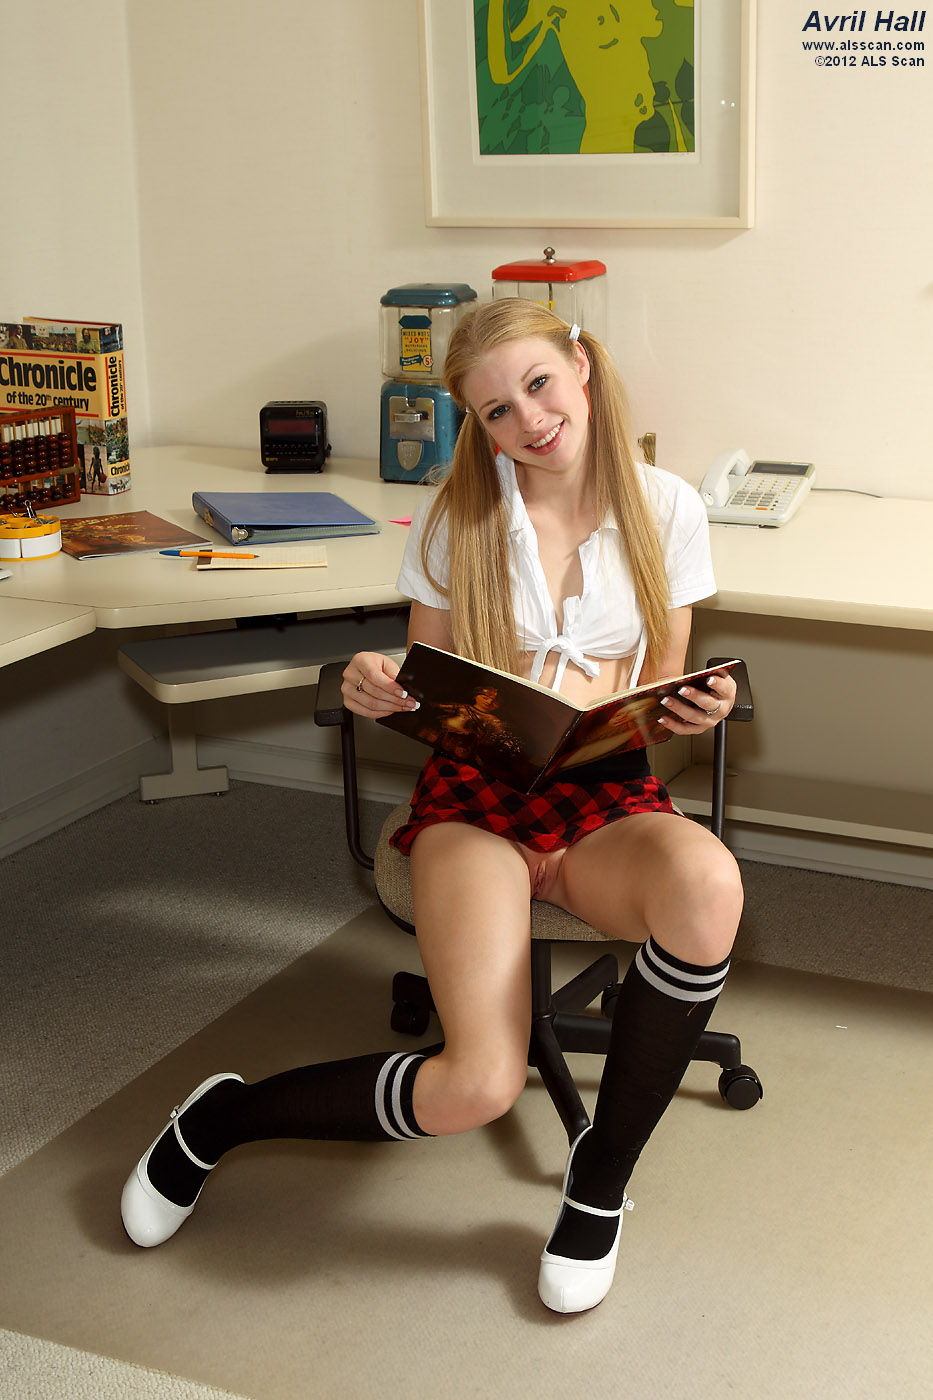 Avril Hall - Pigtailed Avril Hall Strips College Girl Outfit for Speculum Exam